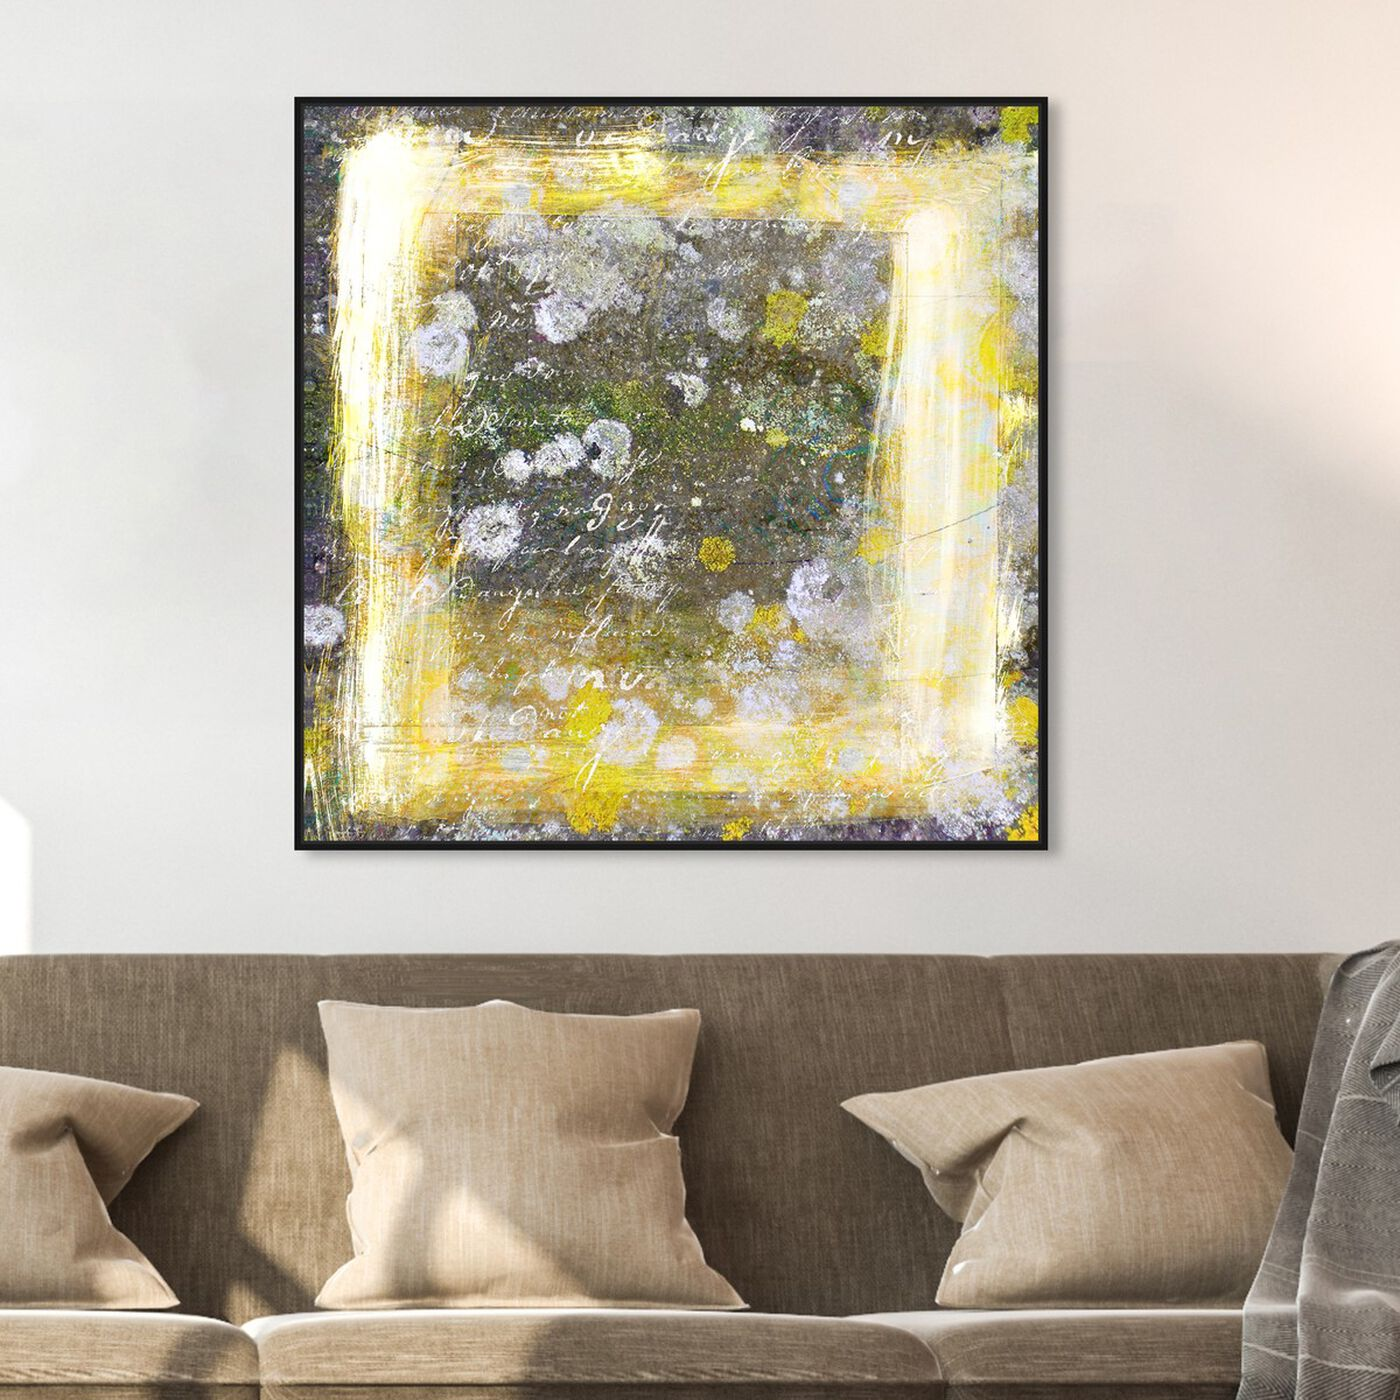 Hanging view of La Jolla featuring abstract and paint art.